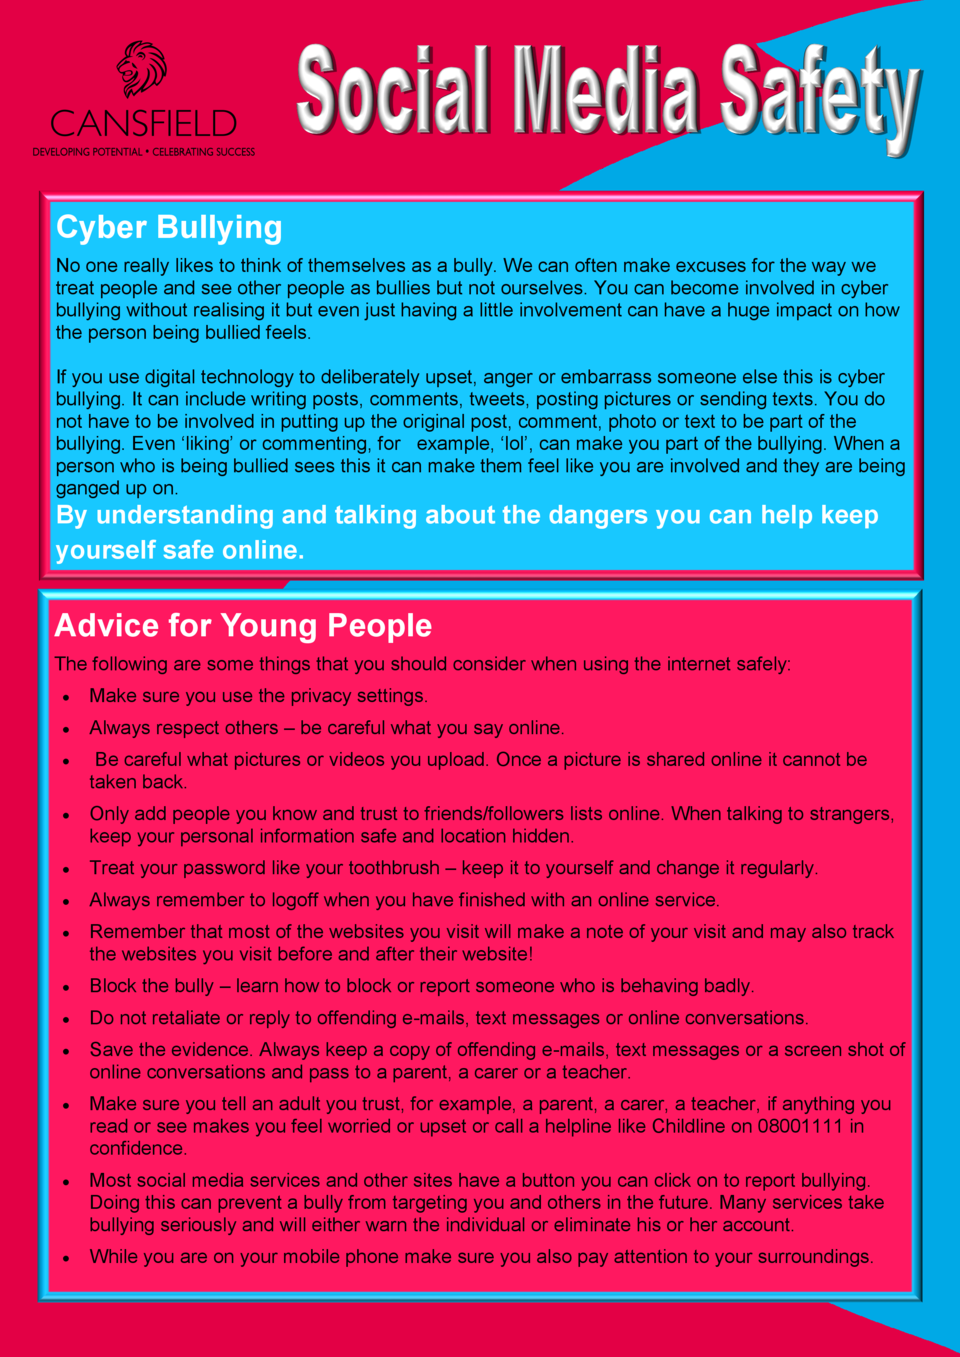 Cyber Bullying No one really likes to think of themselves as a bully. We can often make excuses for the way we treat peopl...